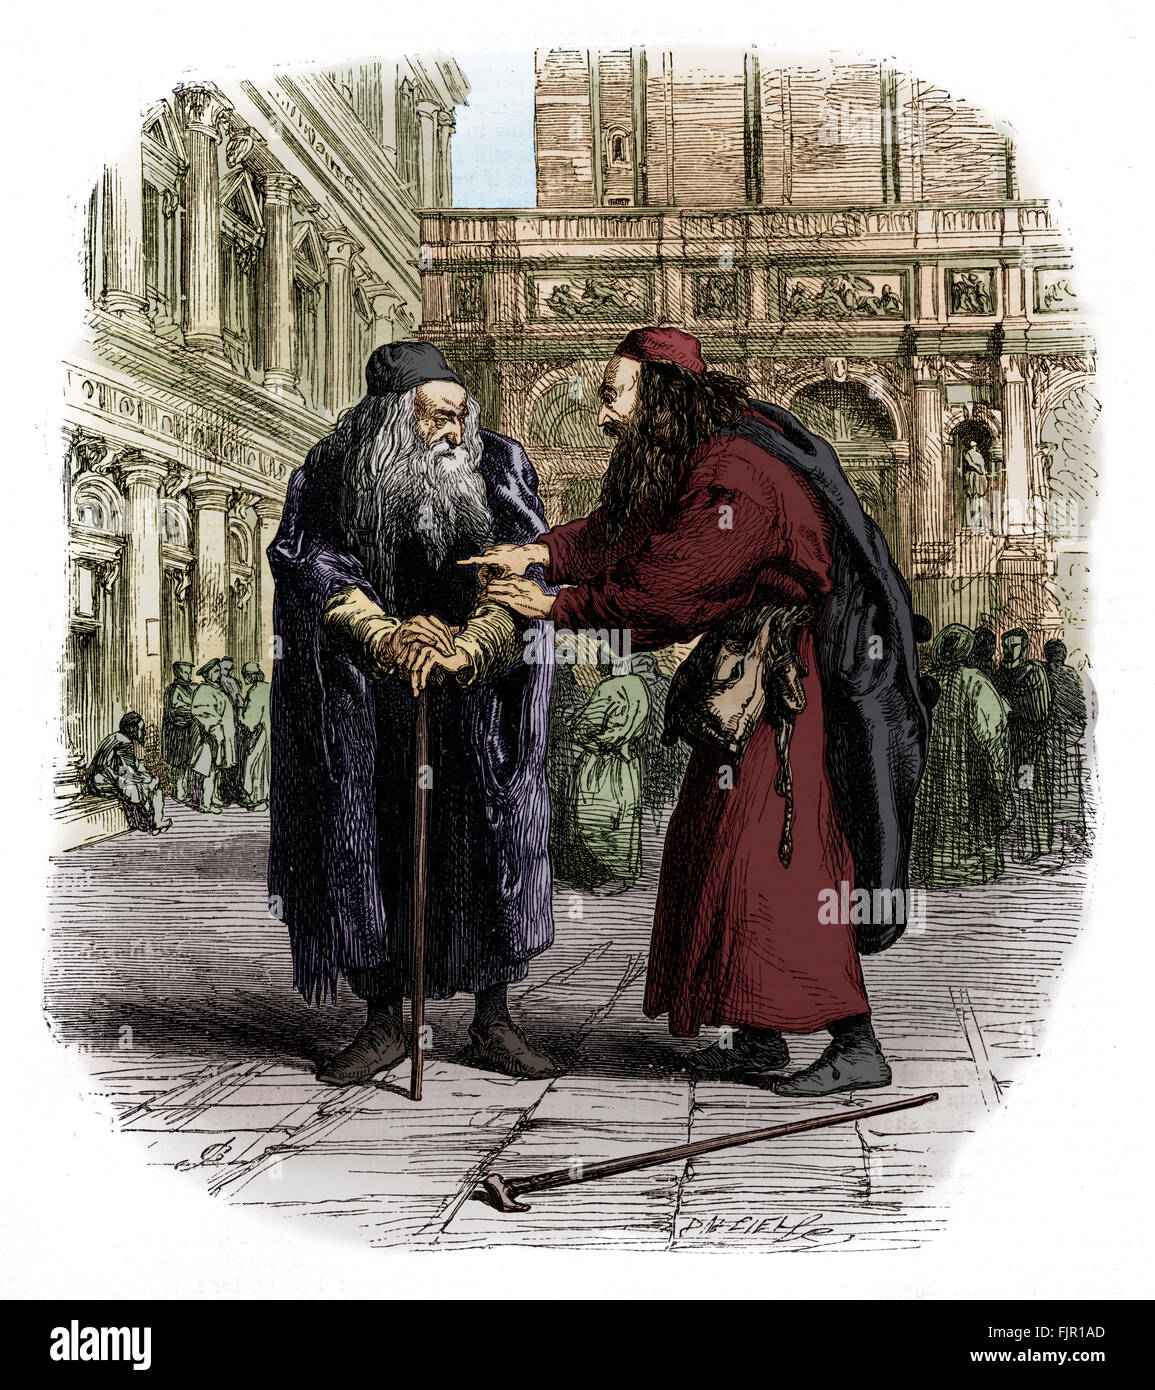 merchant of venice scene i act Read full text and annotations on the merchant of venice act iv - scene i at owl eyes.